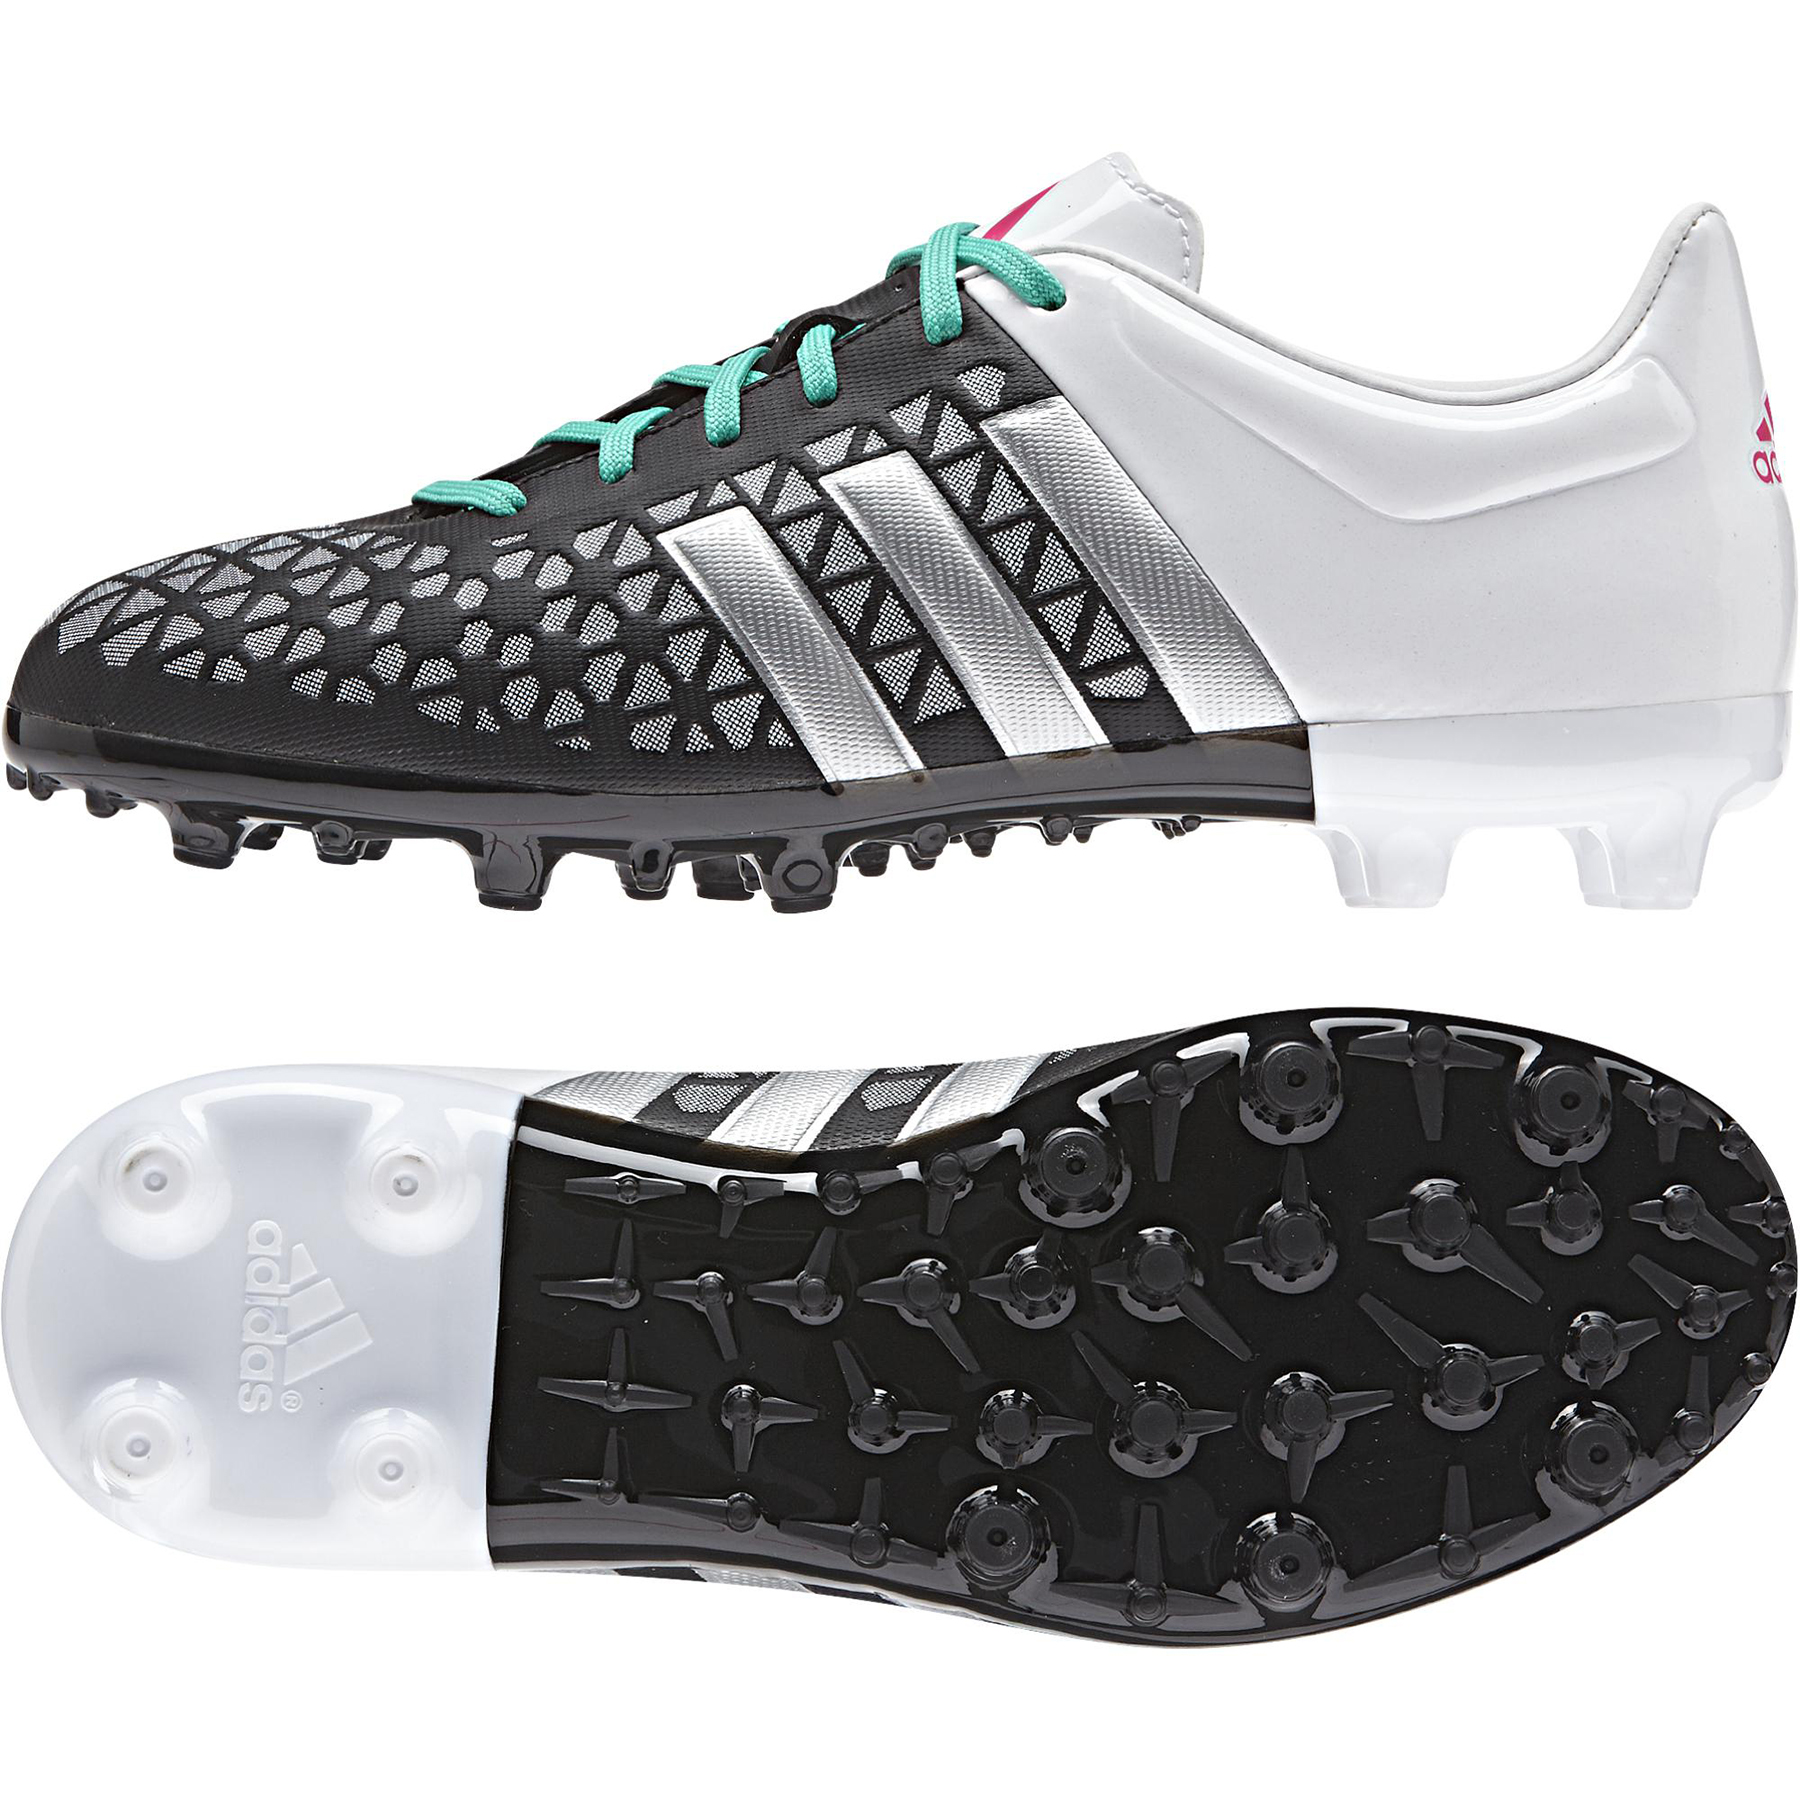 adidas Ace 15.3 Firm Ground Football Boots  Kids Black